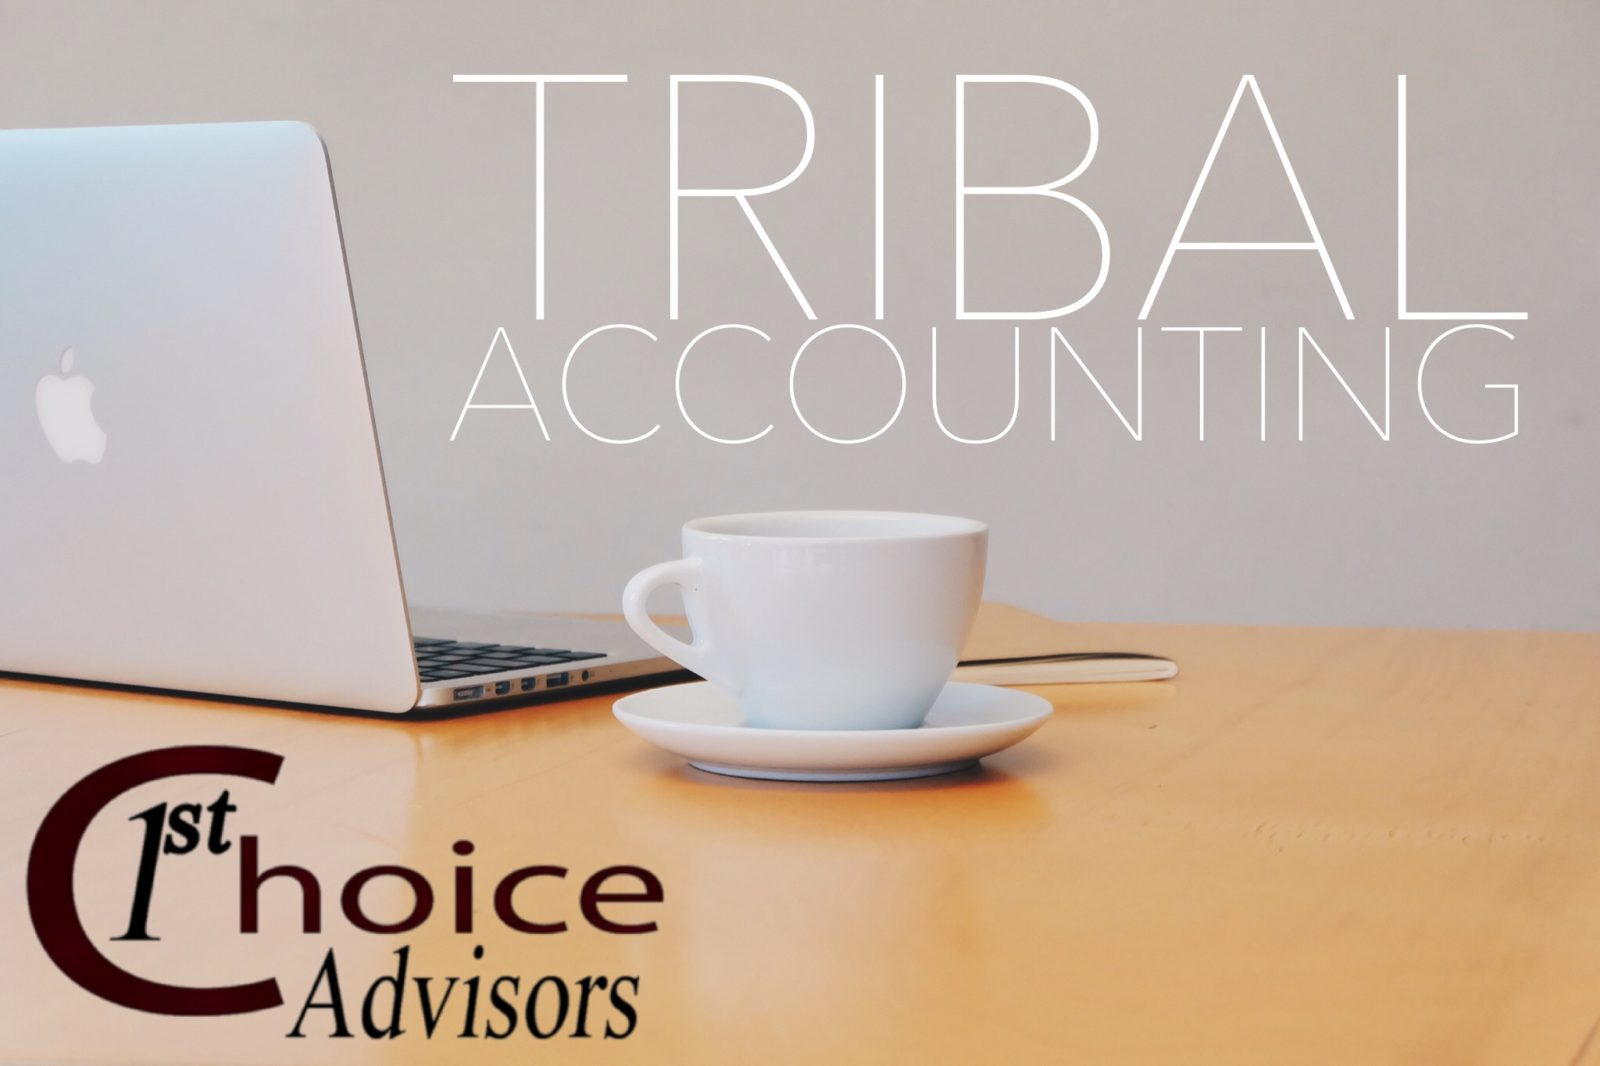 Tribal Accounting Services